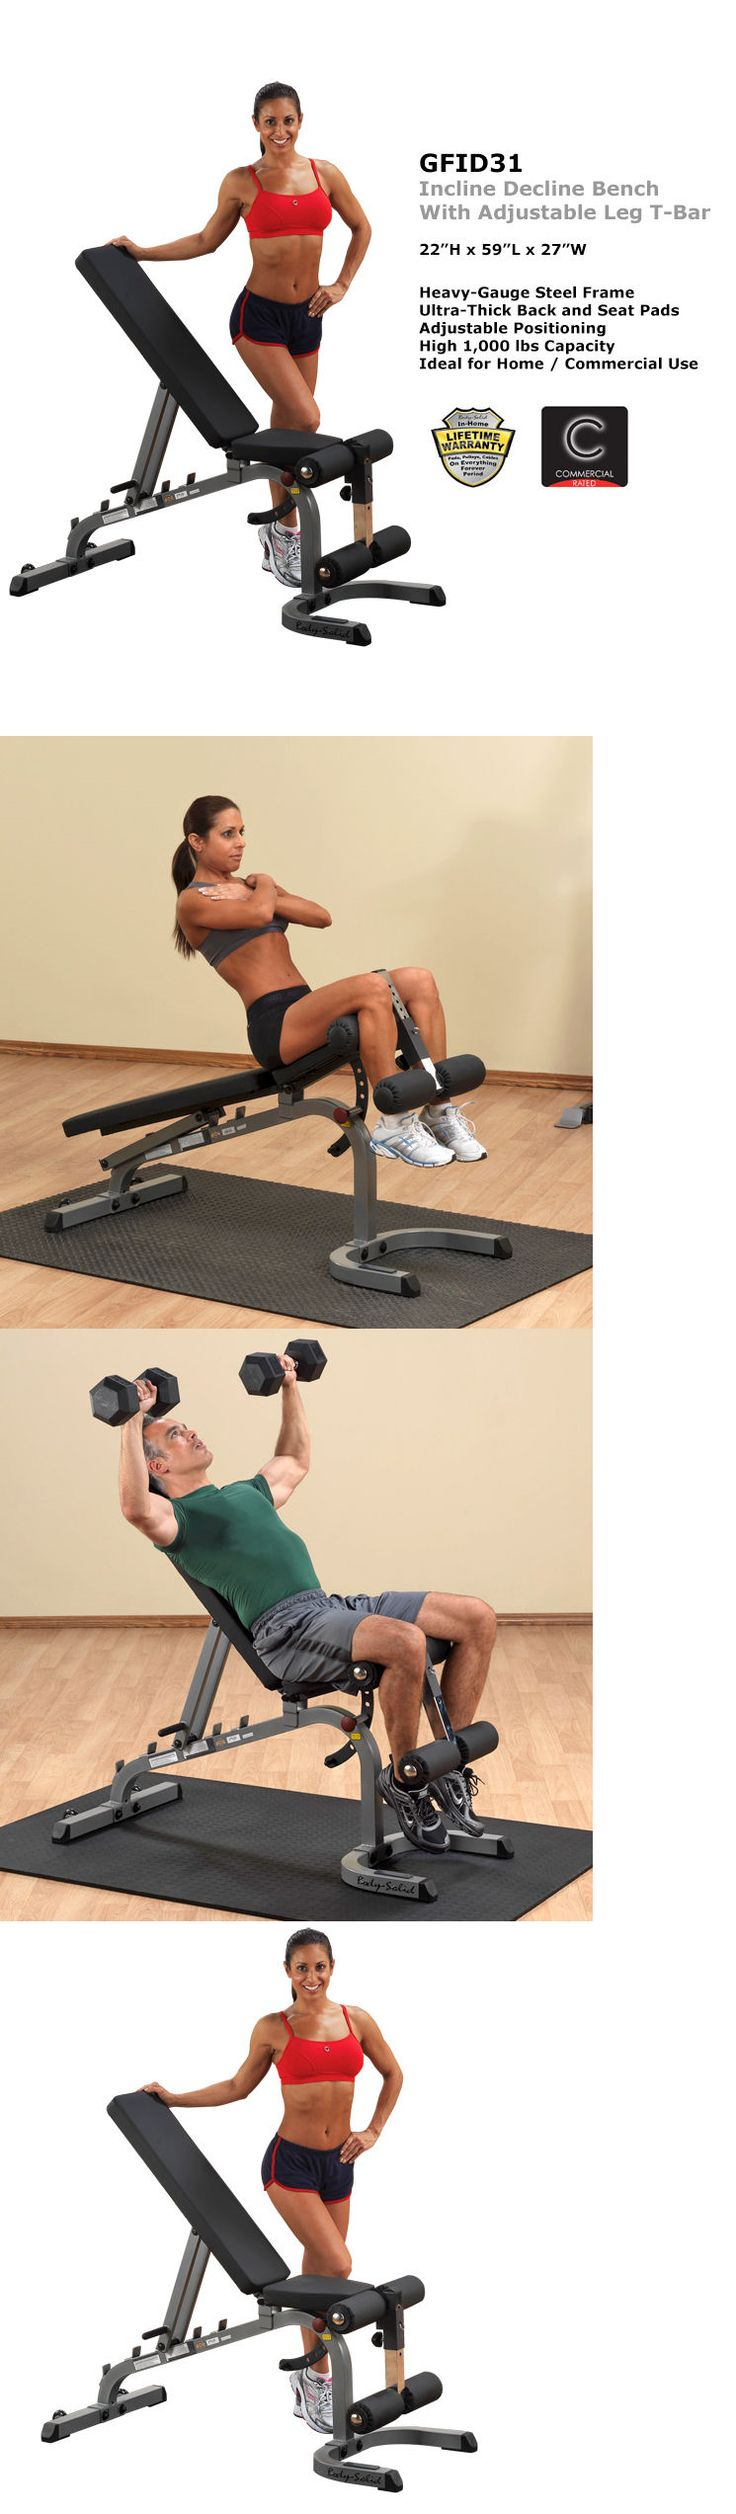 Benches 15281: Body-Solid Adjustable Flat Incline Decline Bench (Gfid31) - 2017 Model! -> BUY IT NOW ONLY: $305 on eBay!